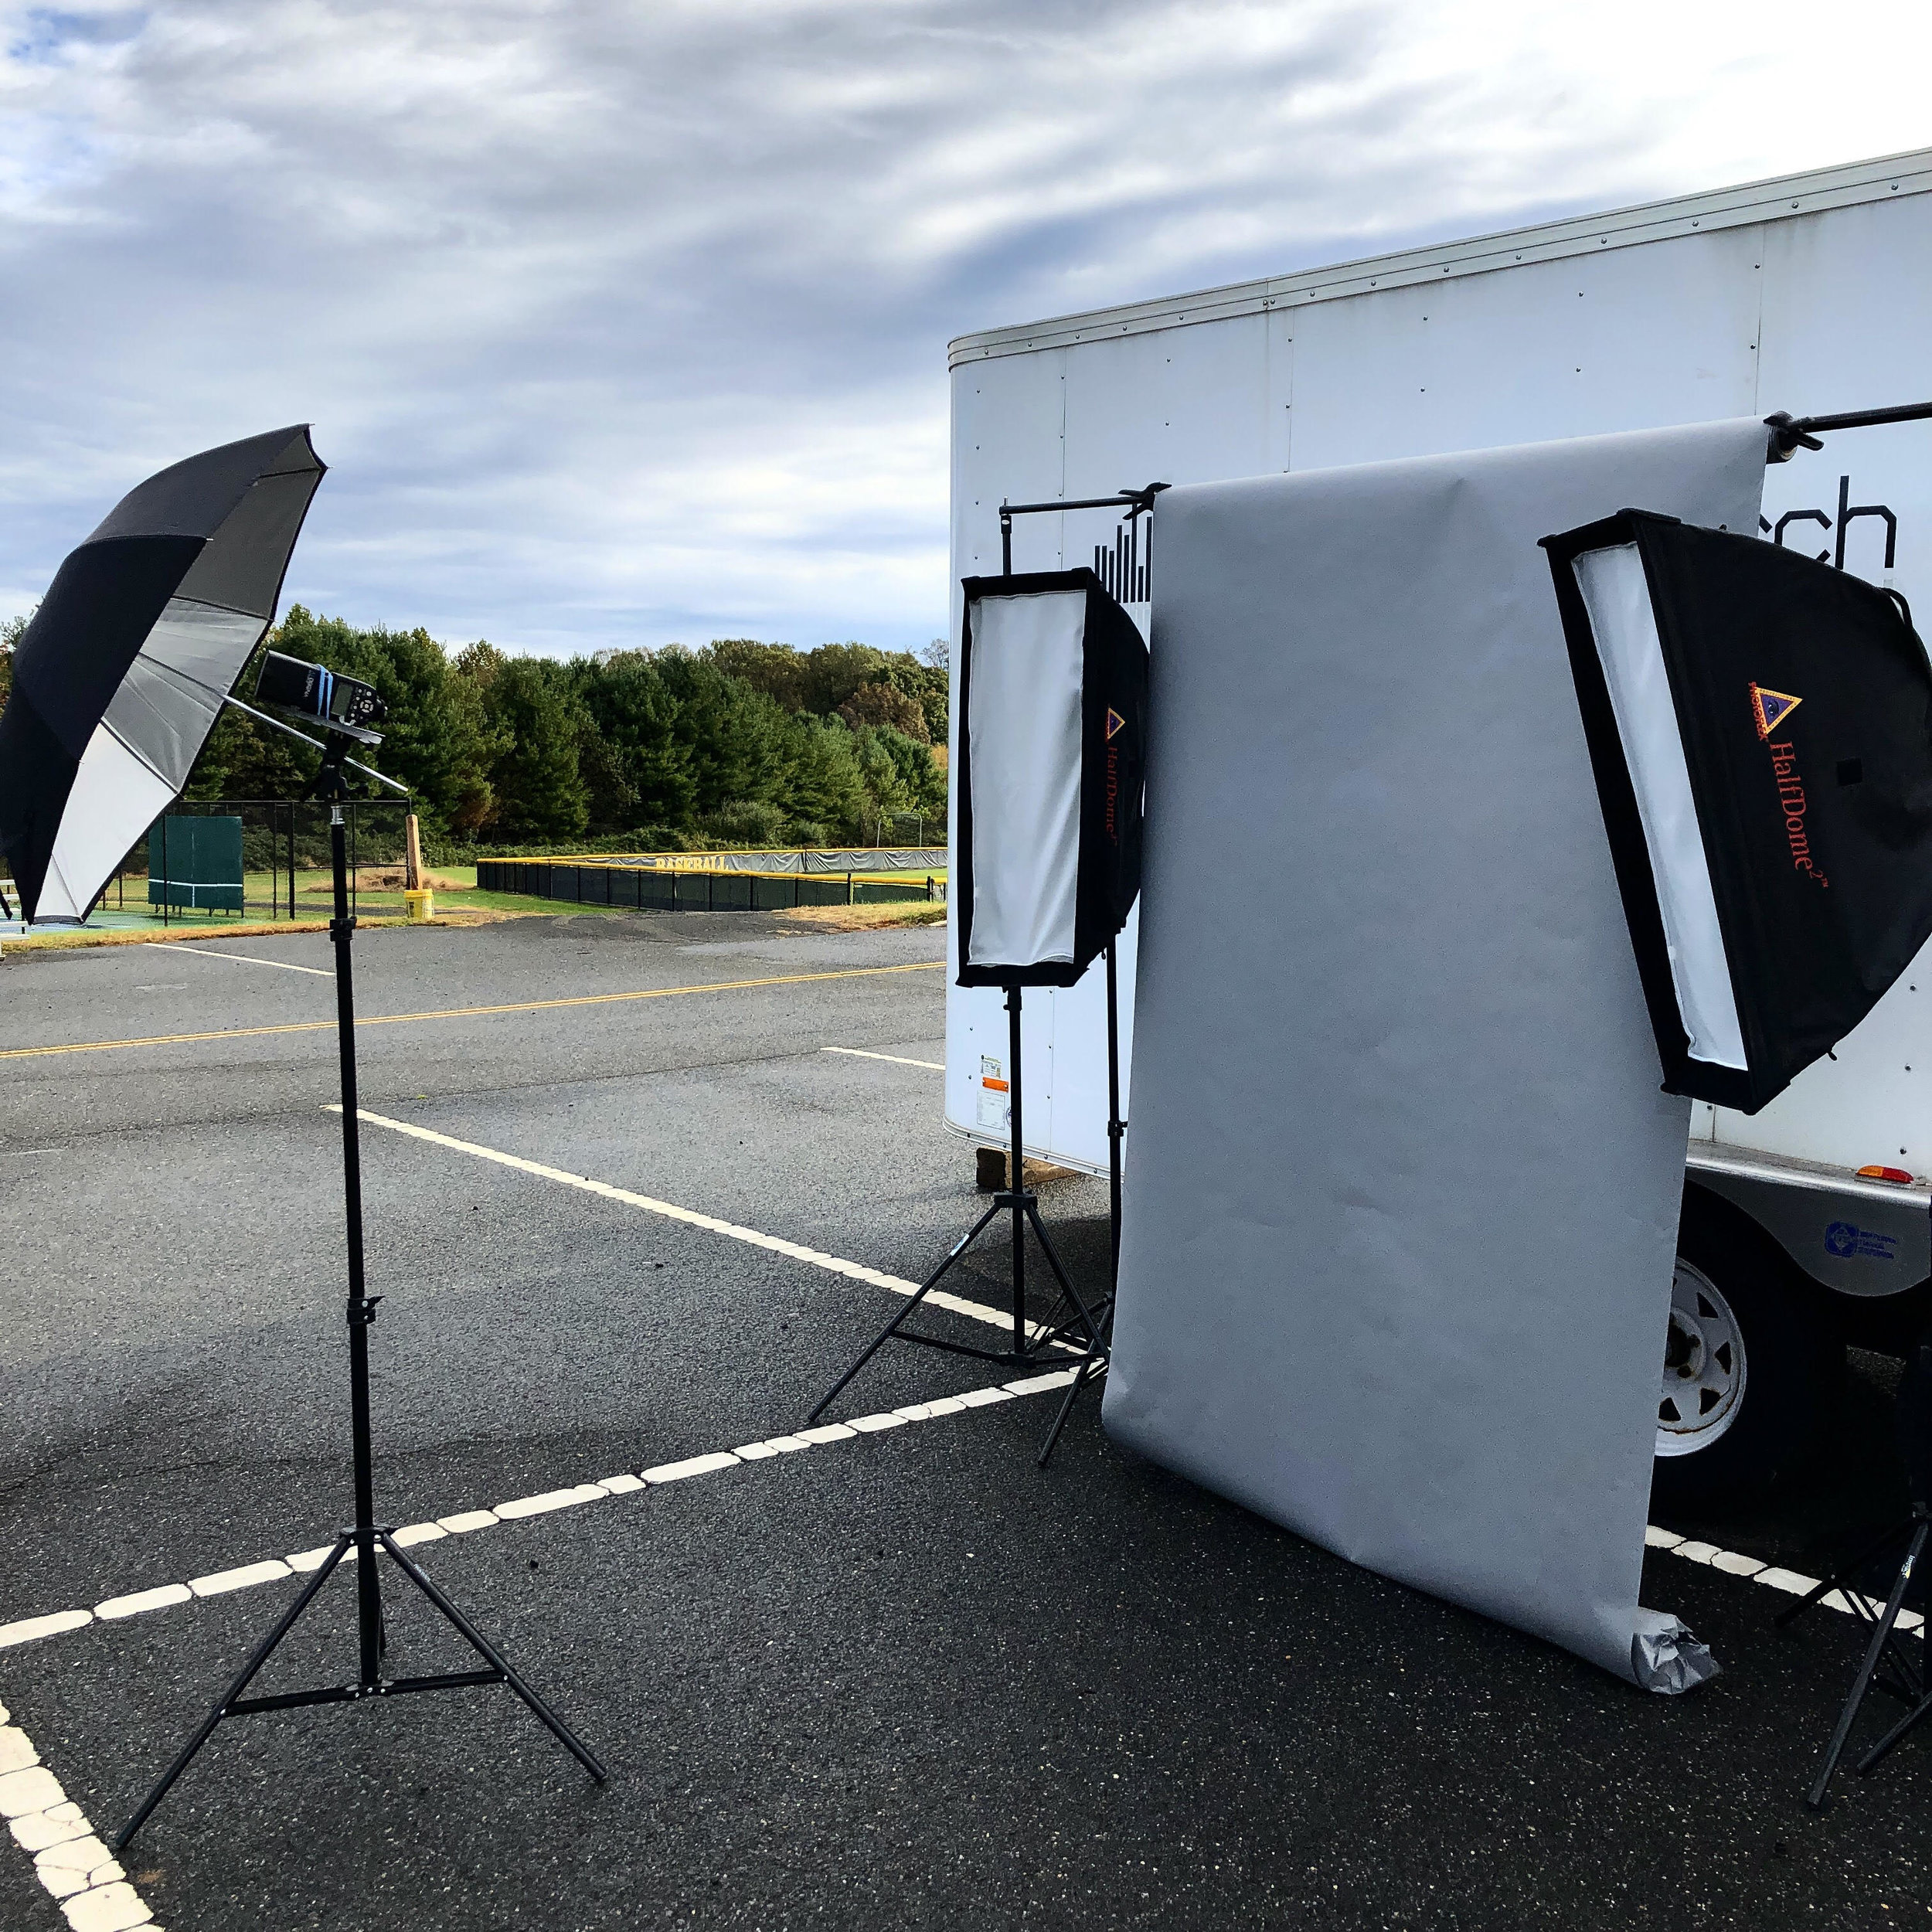 Mobile Studio - Being able to set up studio at any location